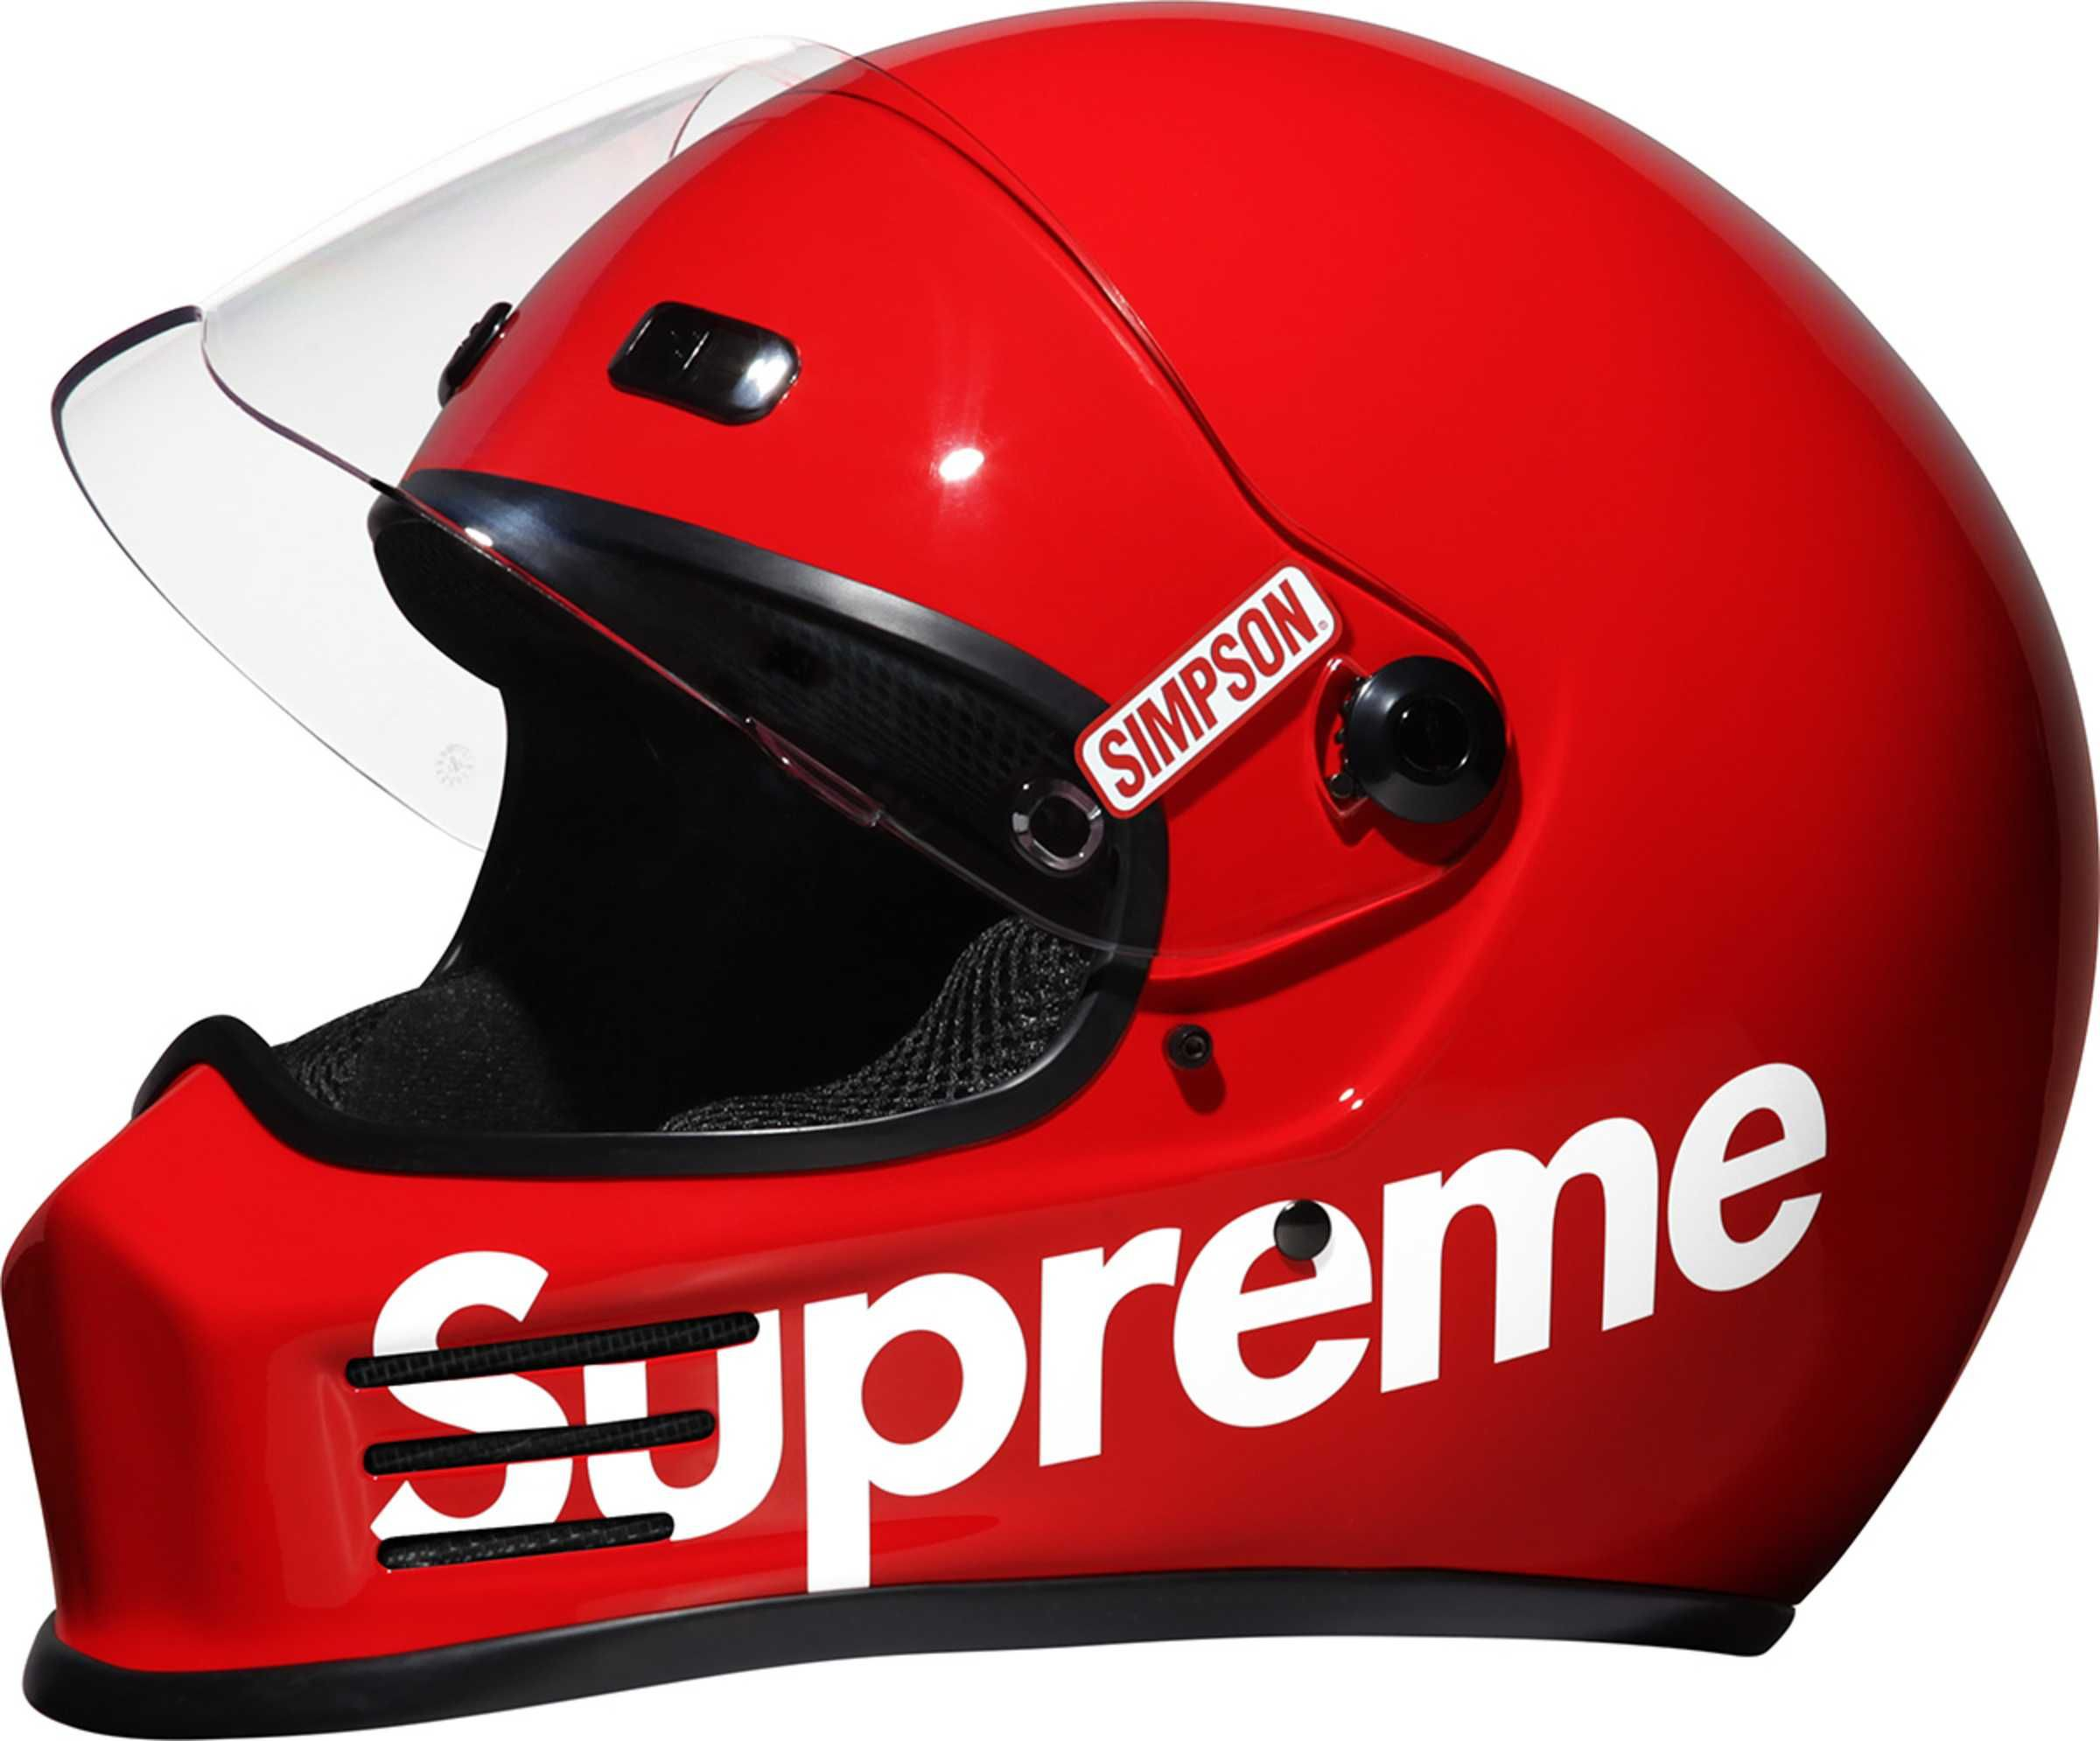 Simpson Headlines Supreme S Highly Anticipated Accessories Collection For Fall Winter 16 Red Motorcycle Helmets Helmet Red Motorcycle